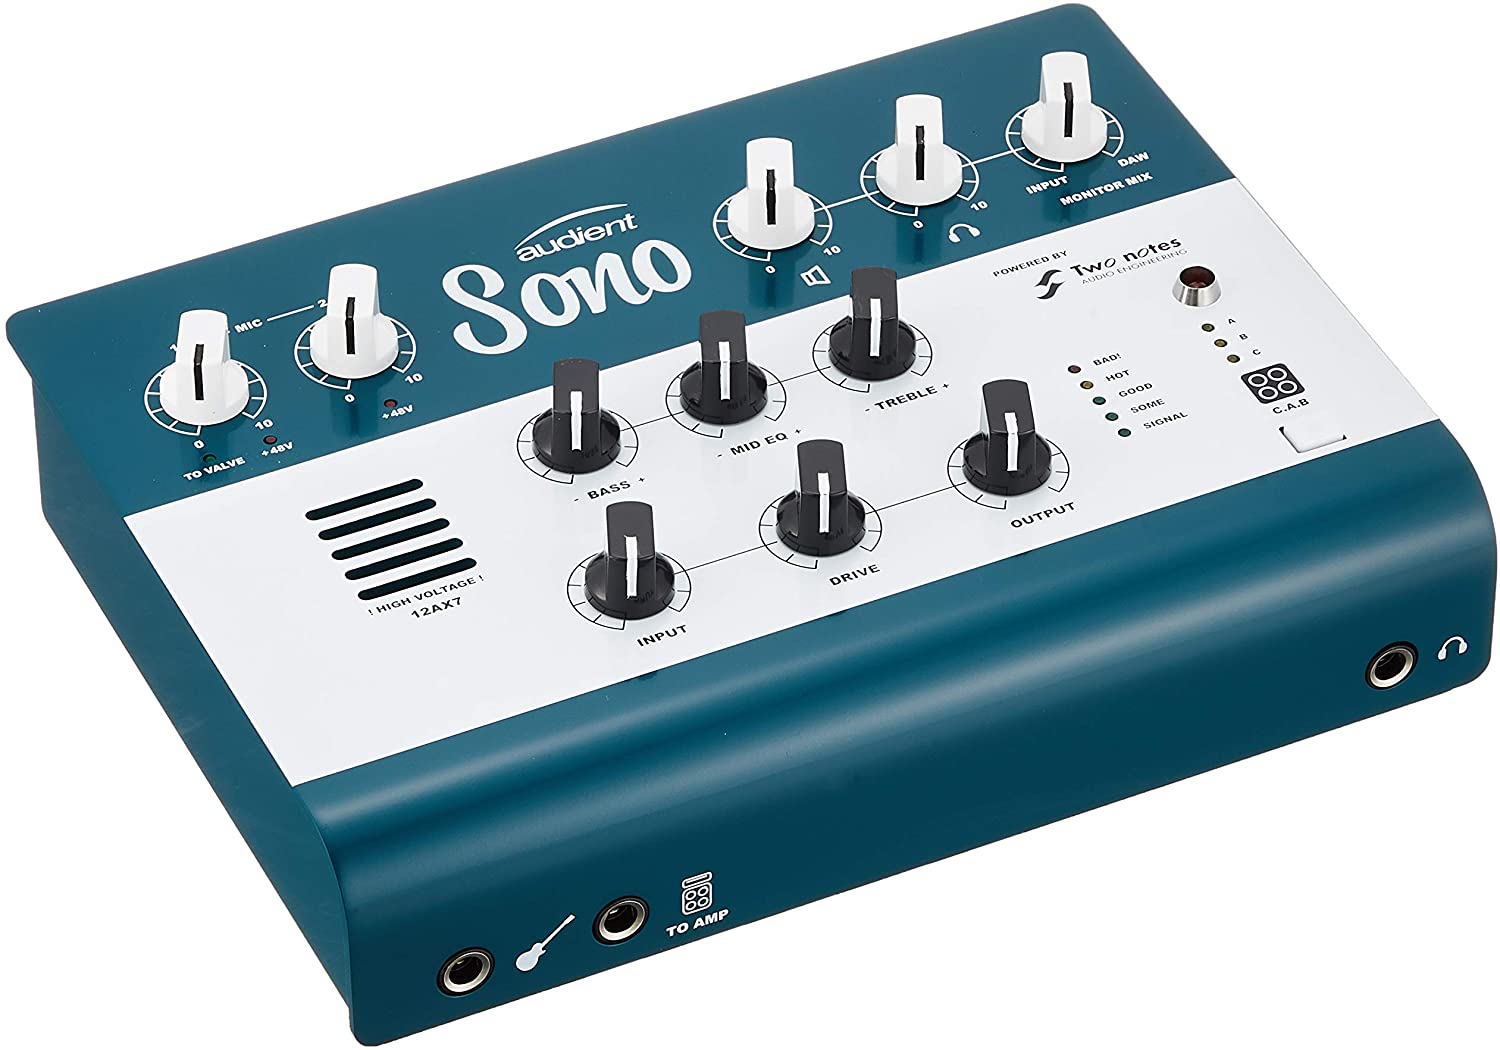 Audient Sono Amp Guitar Recording Audio Interface Ultimate Value Guitar Preamp with Two Notes Power amp, Cab Simulation and 3 Band Analogue Tone Control (The Ultimate Audio Interface For Guitarists)